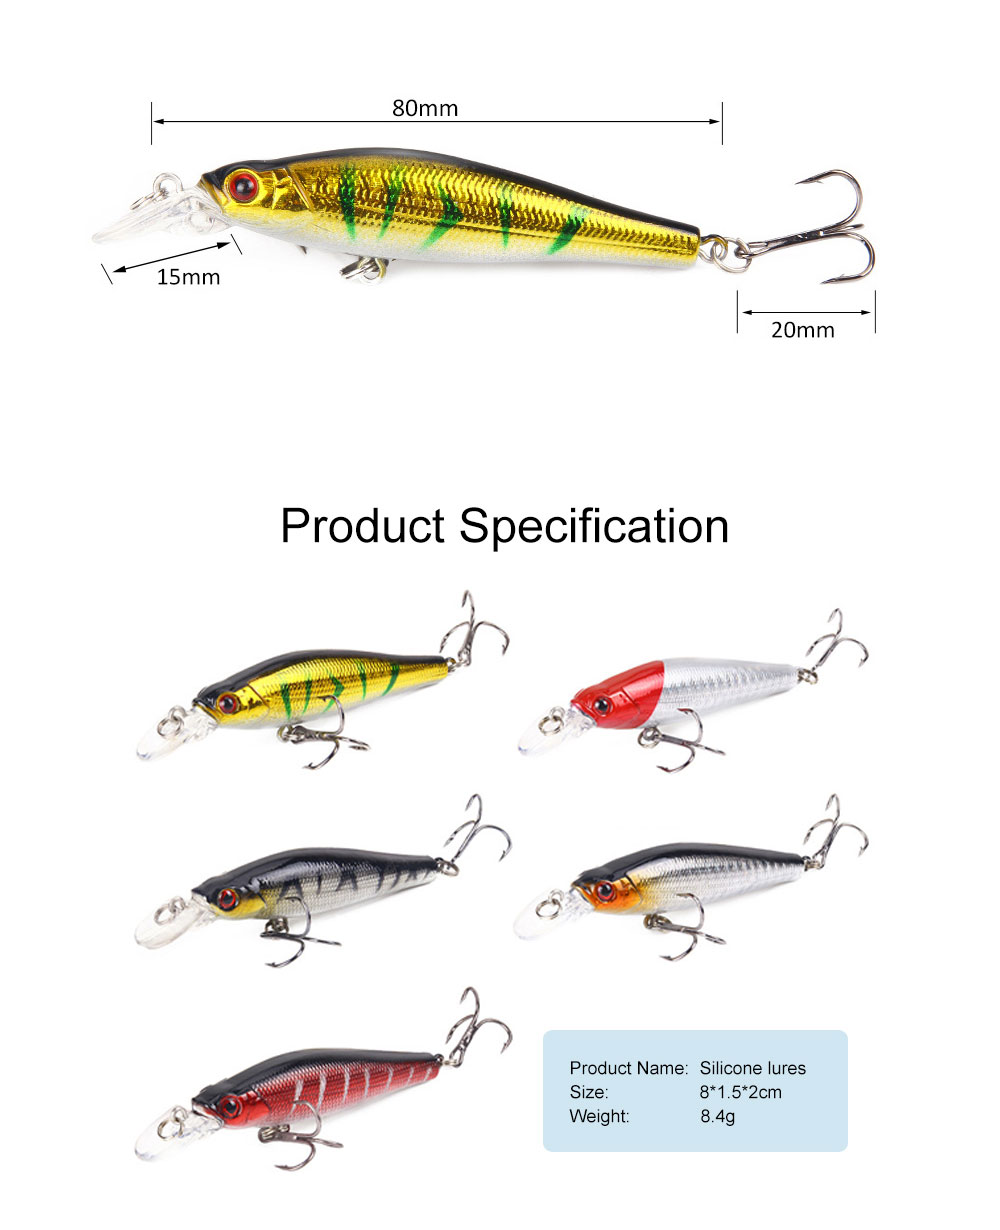 Bionic Fishing Lure with Double Circle and 3D Eyes, Lifelike Skin Silicone Baits, Attractants for Saltwater and Freshwater 6